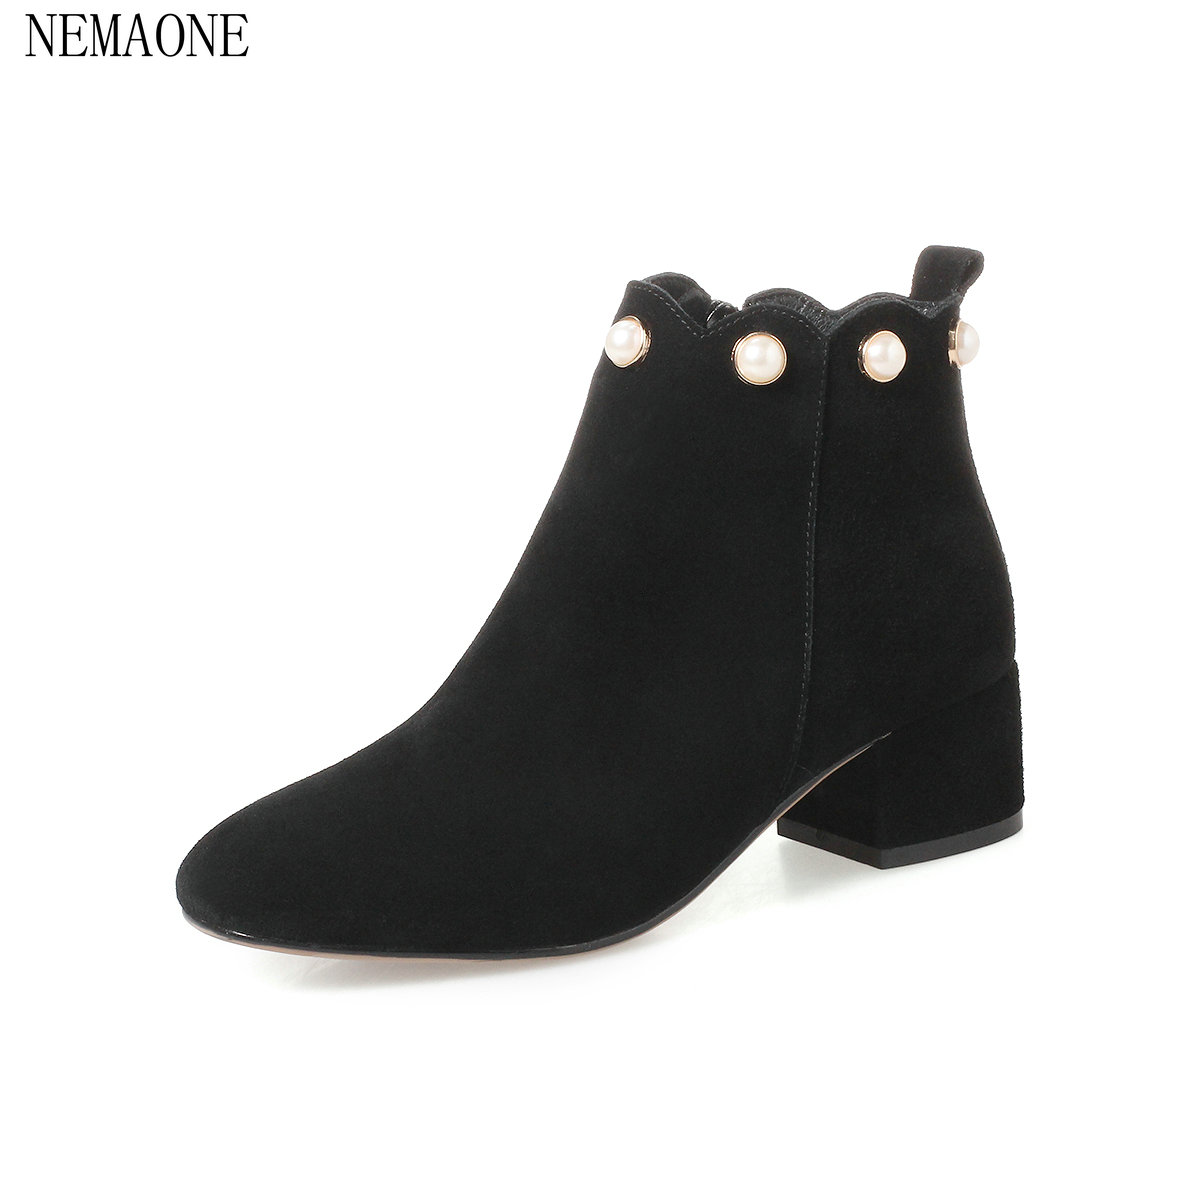 NEMAONE  New 2018 cow suede leather ladies shoes woman ankle boots round toe square high heel zip Autumn black size34-43 round toe autumn shoes high heel platform black casual lace up 2017 front ankle boots booties patent leather female ladies new